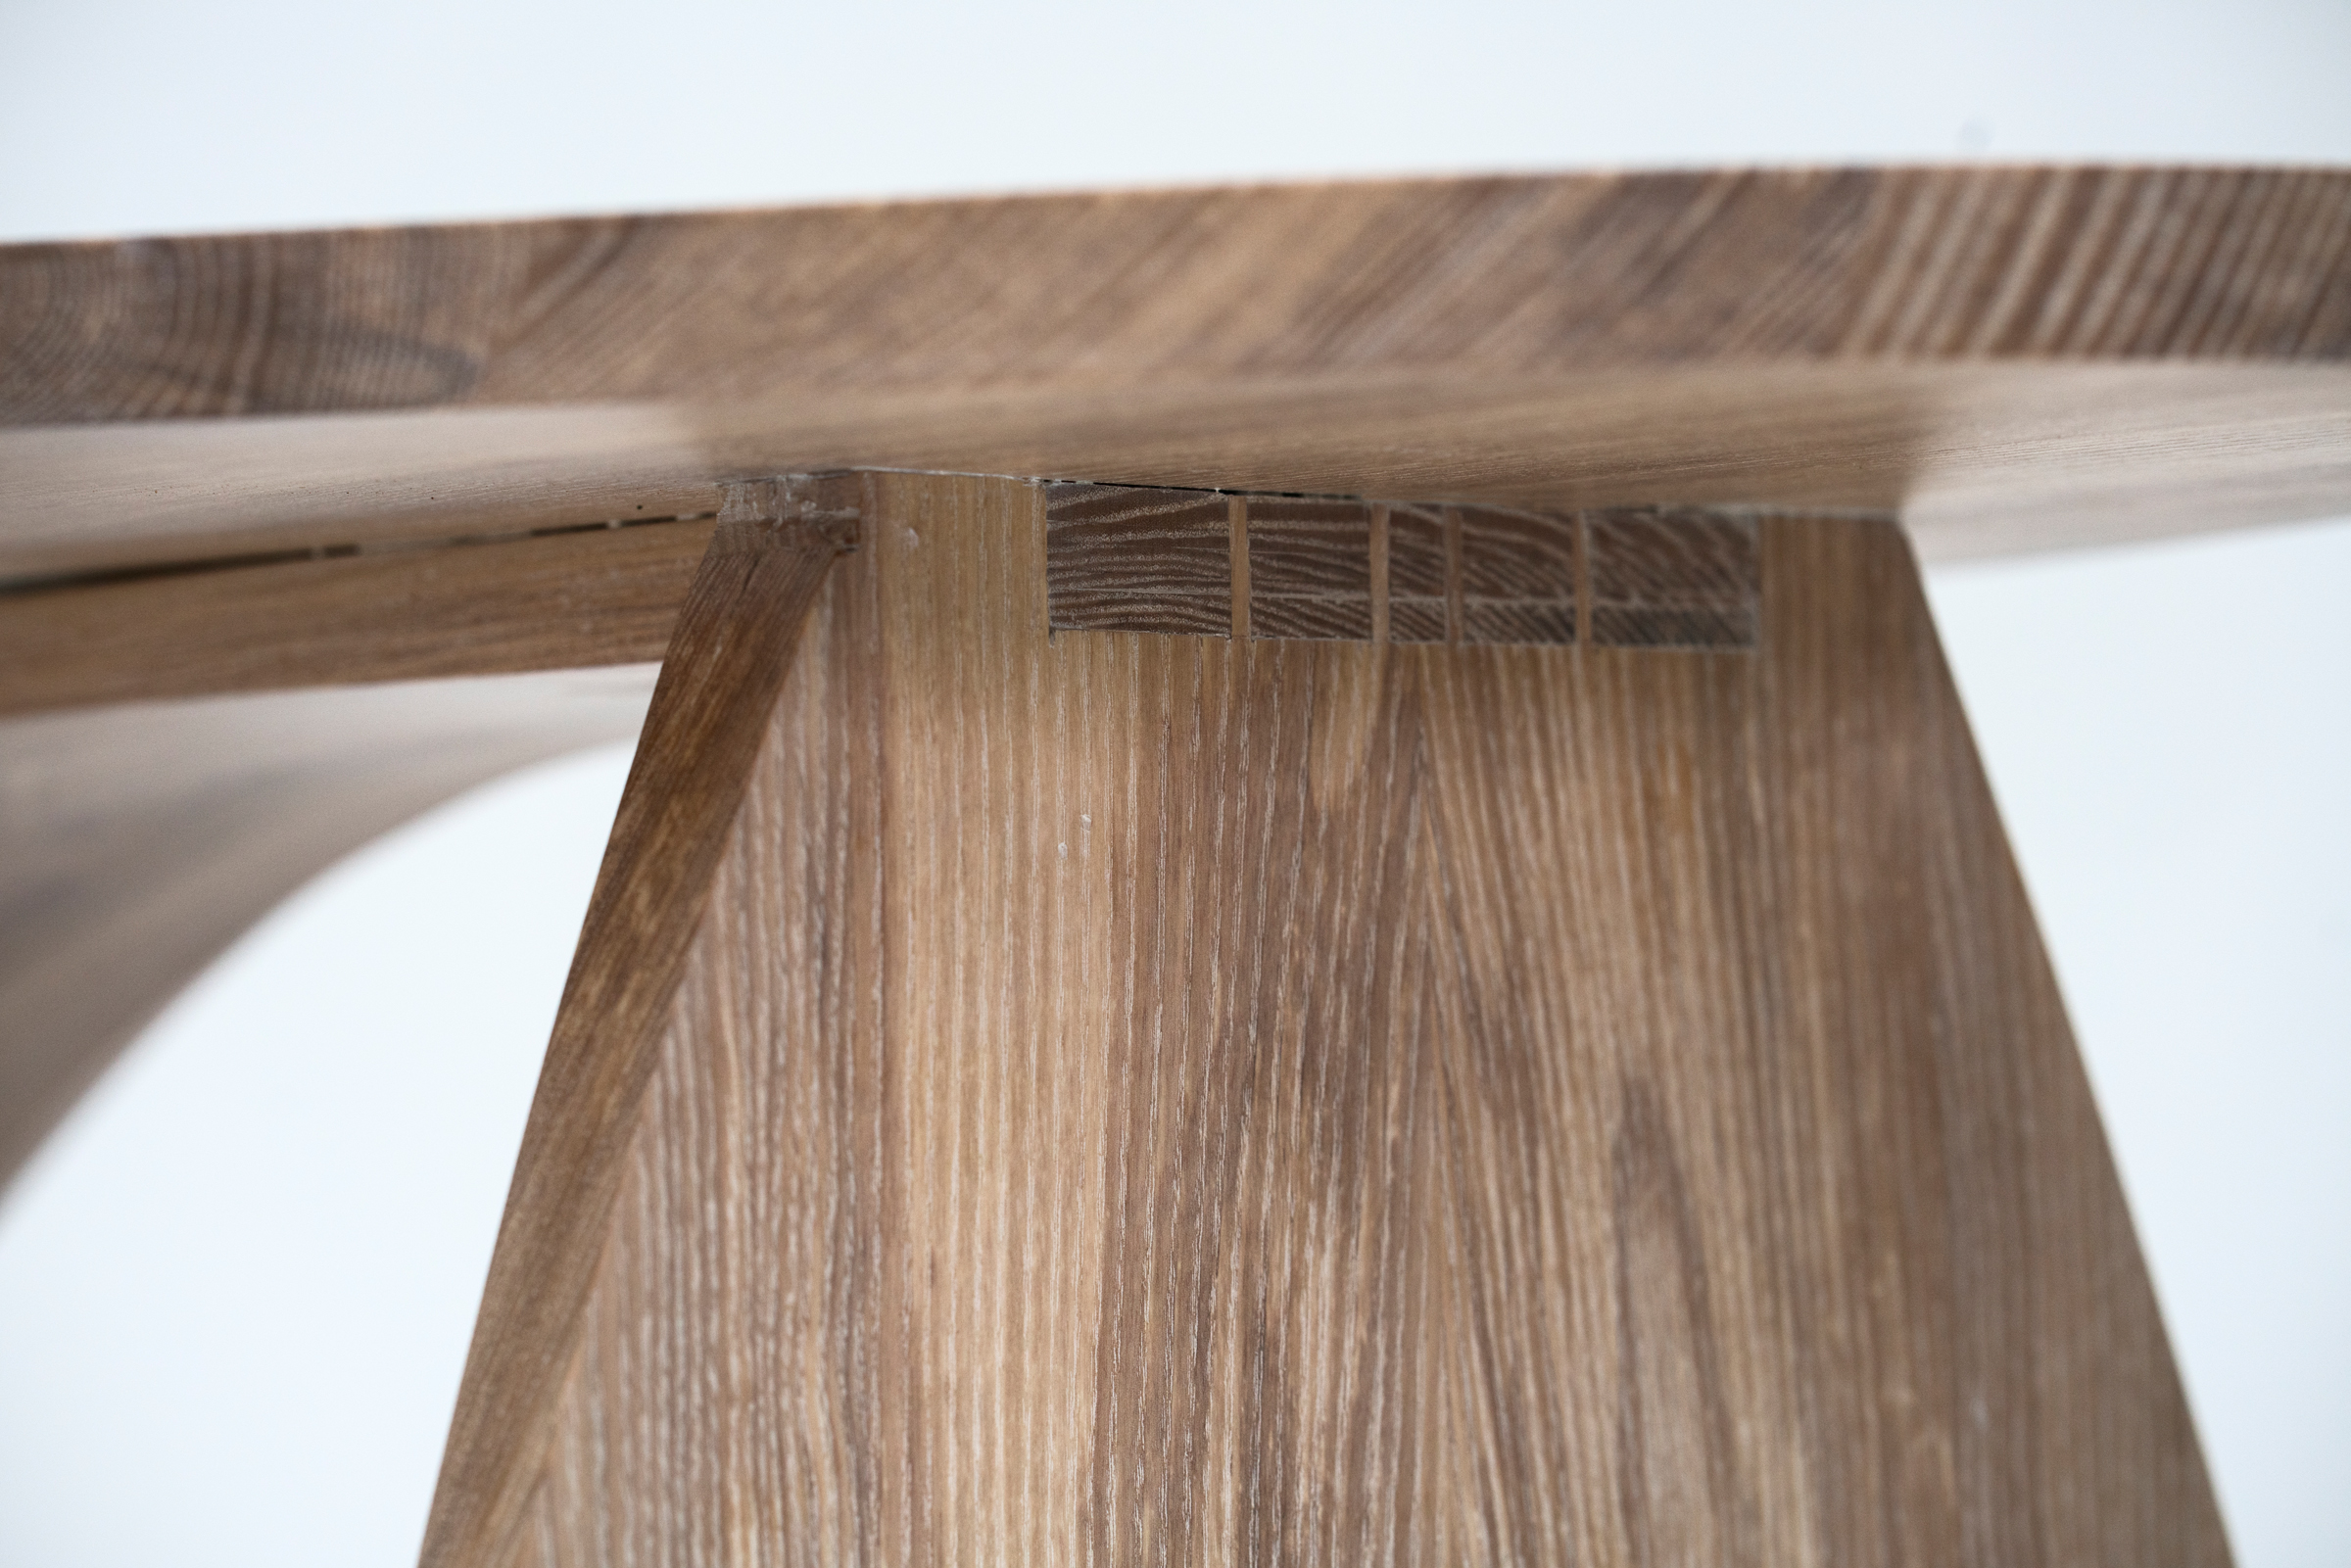 5 Dovetails that join the front leg to the back leg.